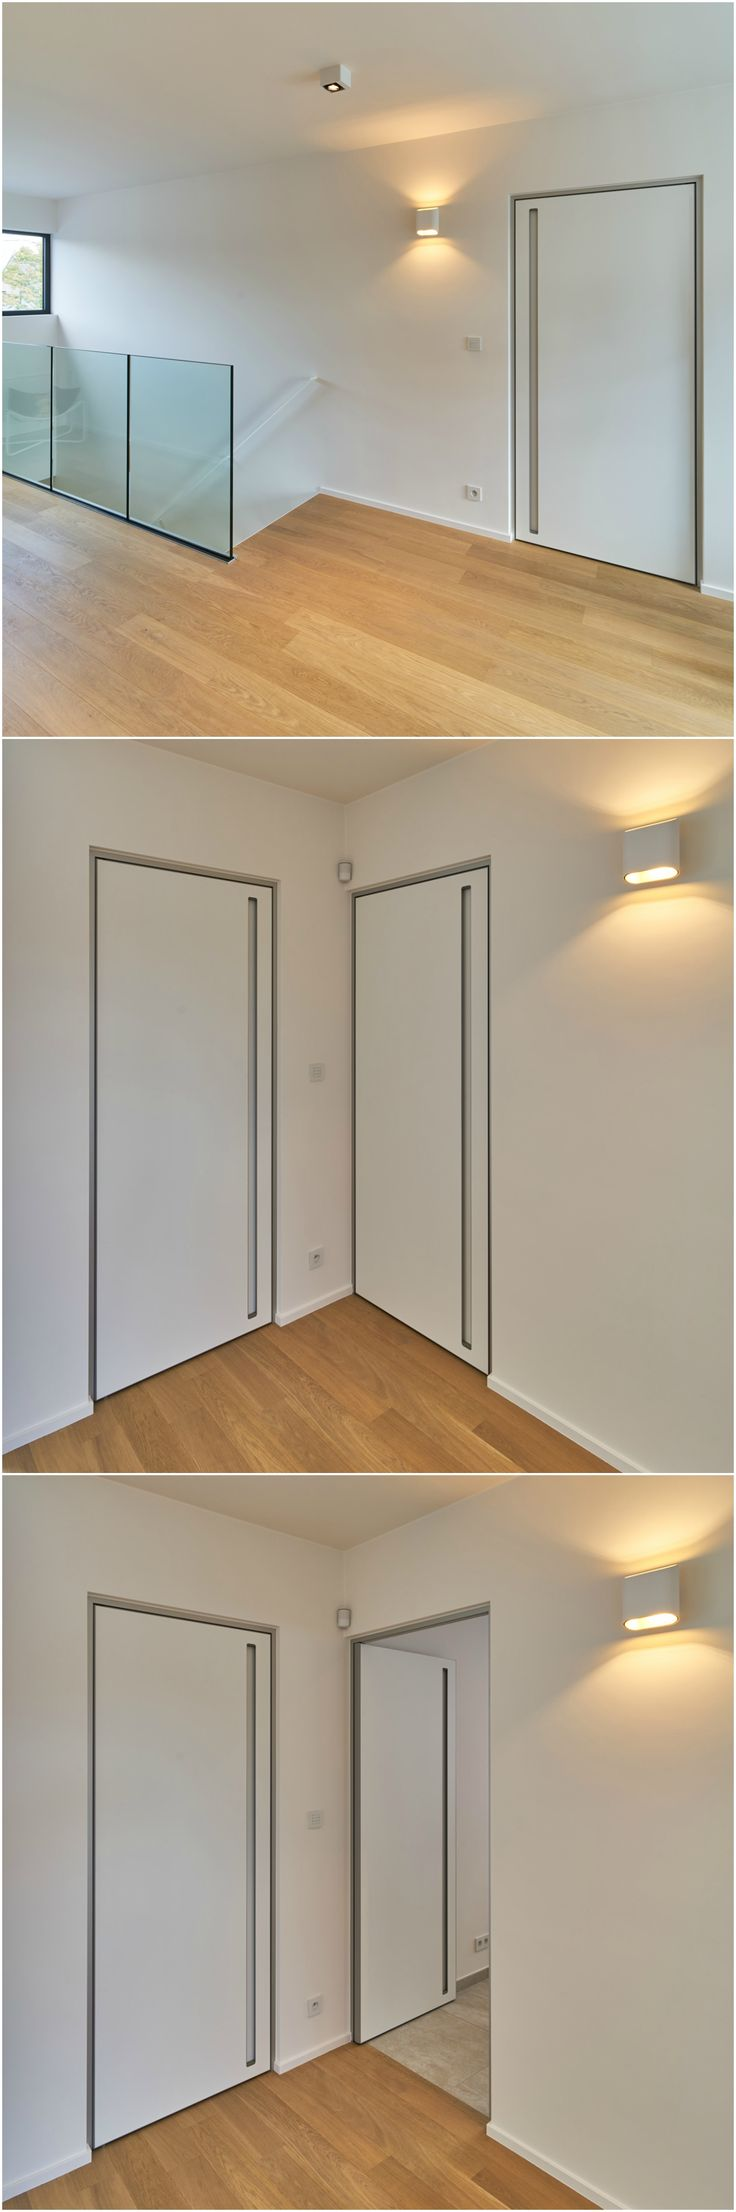 Modern Custom Made Interior Doors With A Minimal Aluminium Door Frame And A  Built